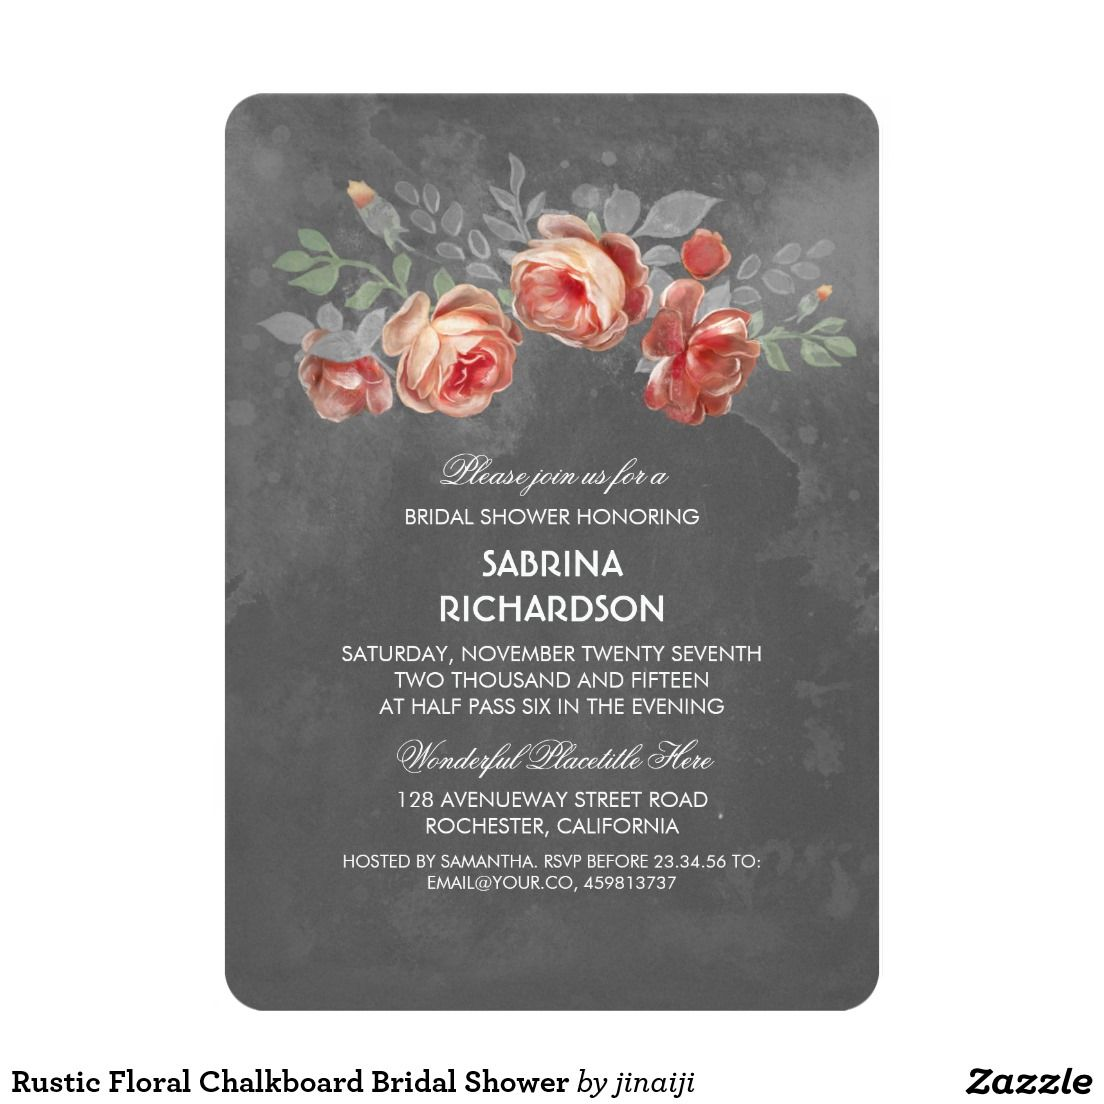 Rustic Floral Chalkboard Bridal Shower Card  Chalkboard Bridal